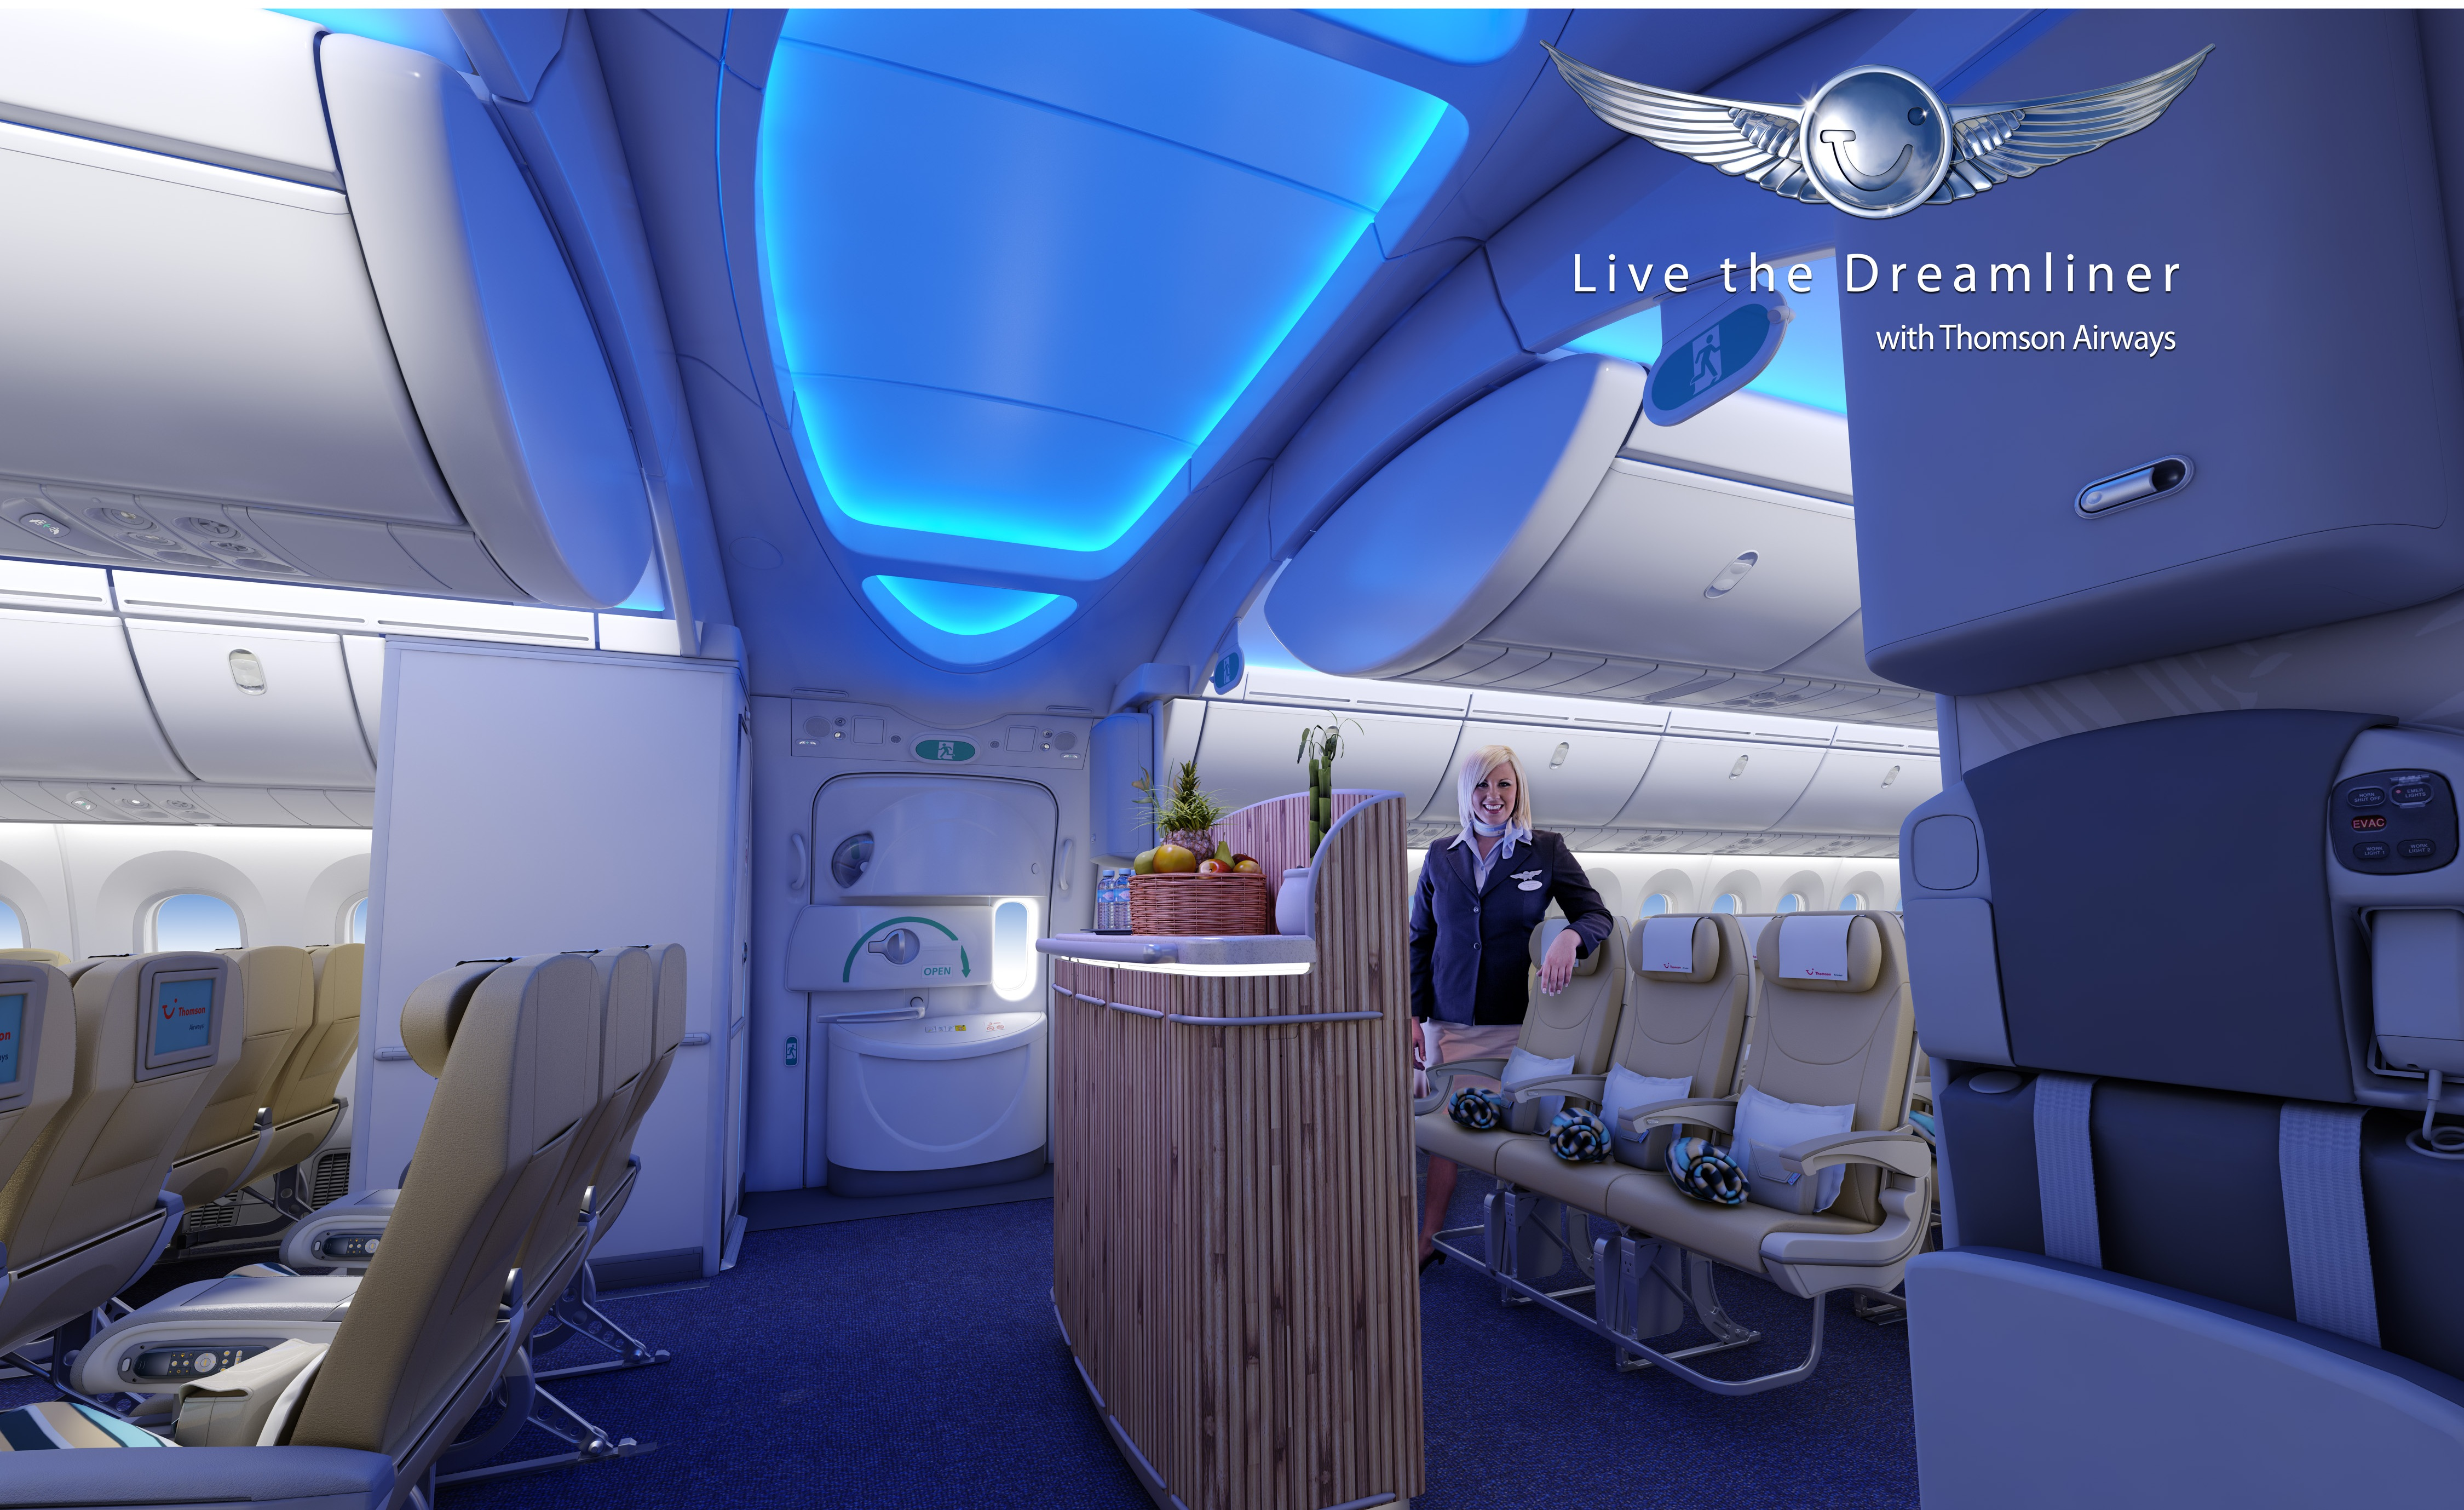 Dreamliner Jets In To Farnborough Airshow